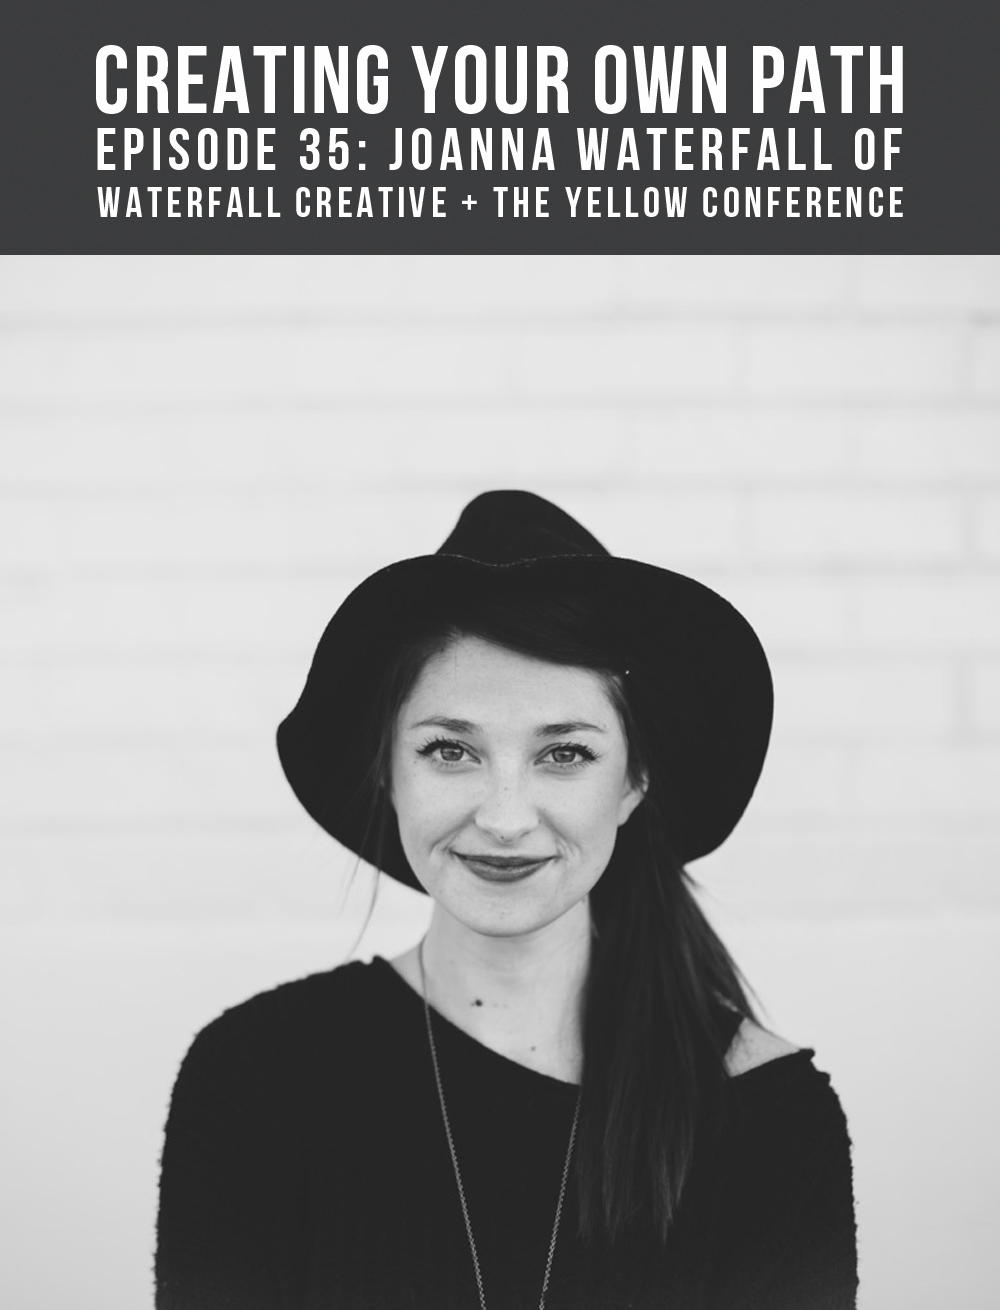 Episode 35 - Creating Your Own Path with Joanna Waterfall of Waterfall Creative and The Yellow Conference